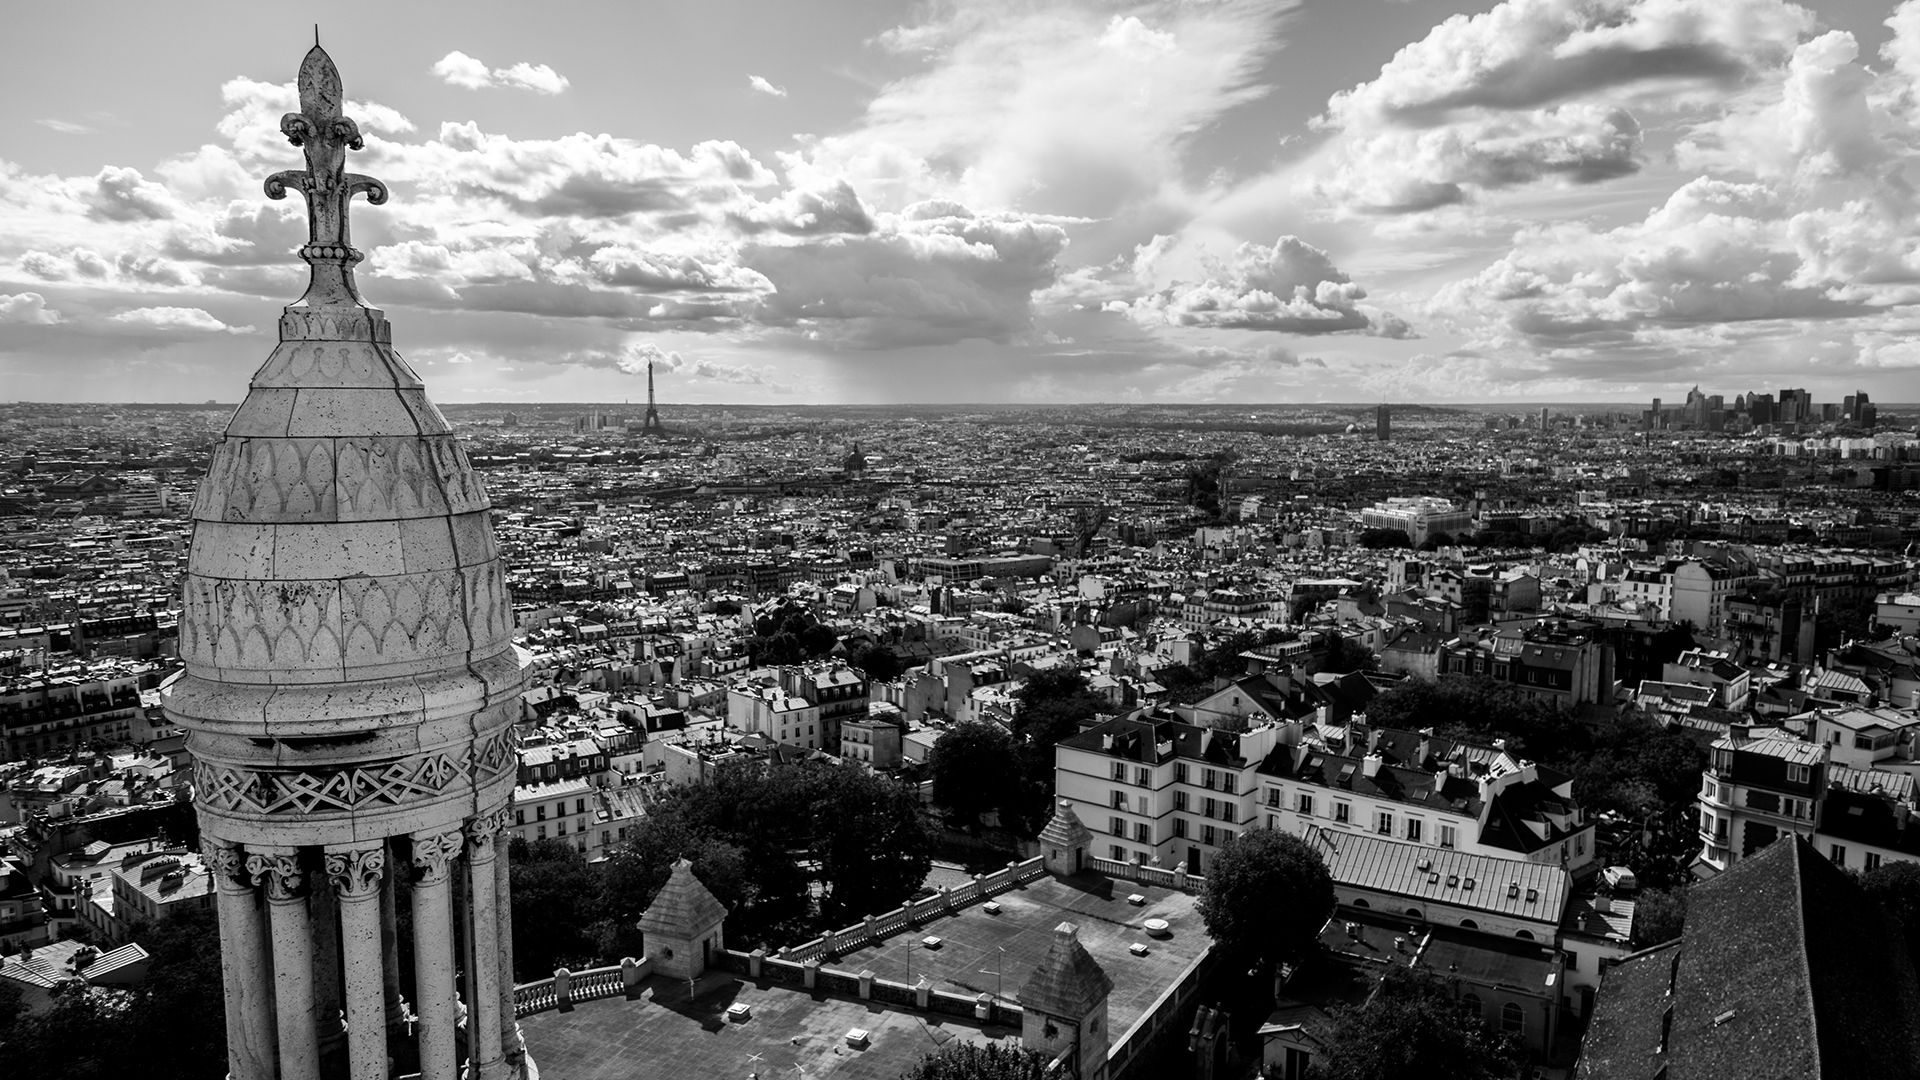 paris-landscape-city-photography